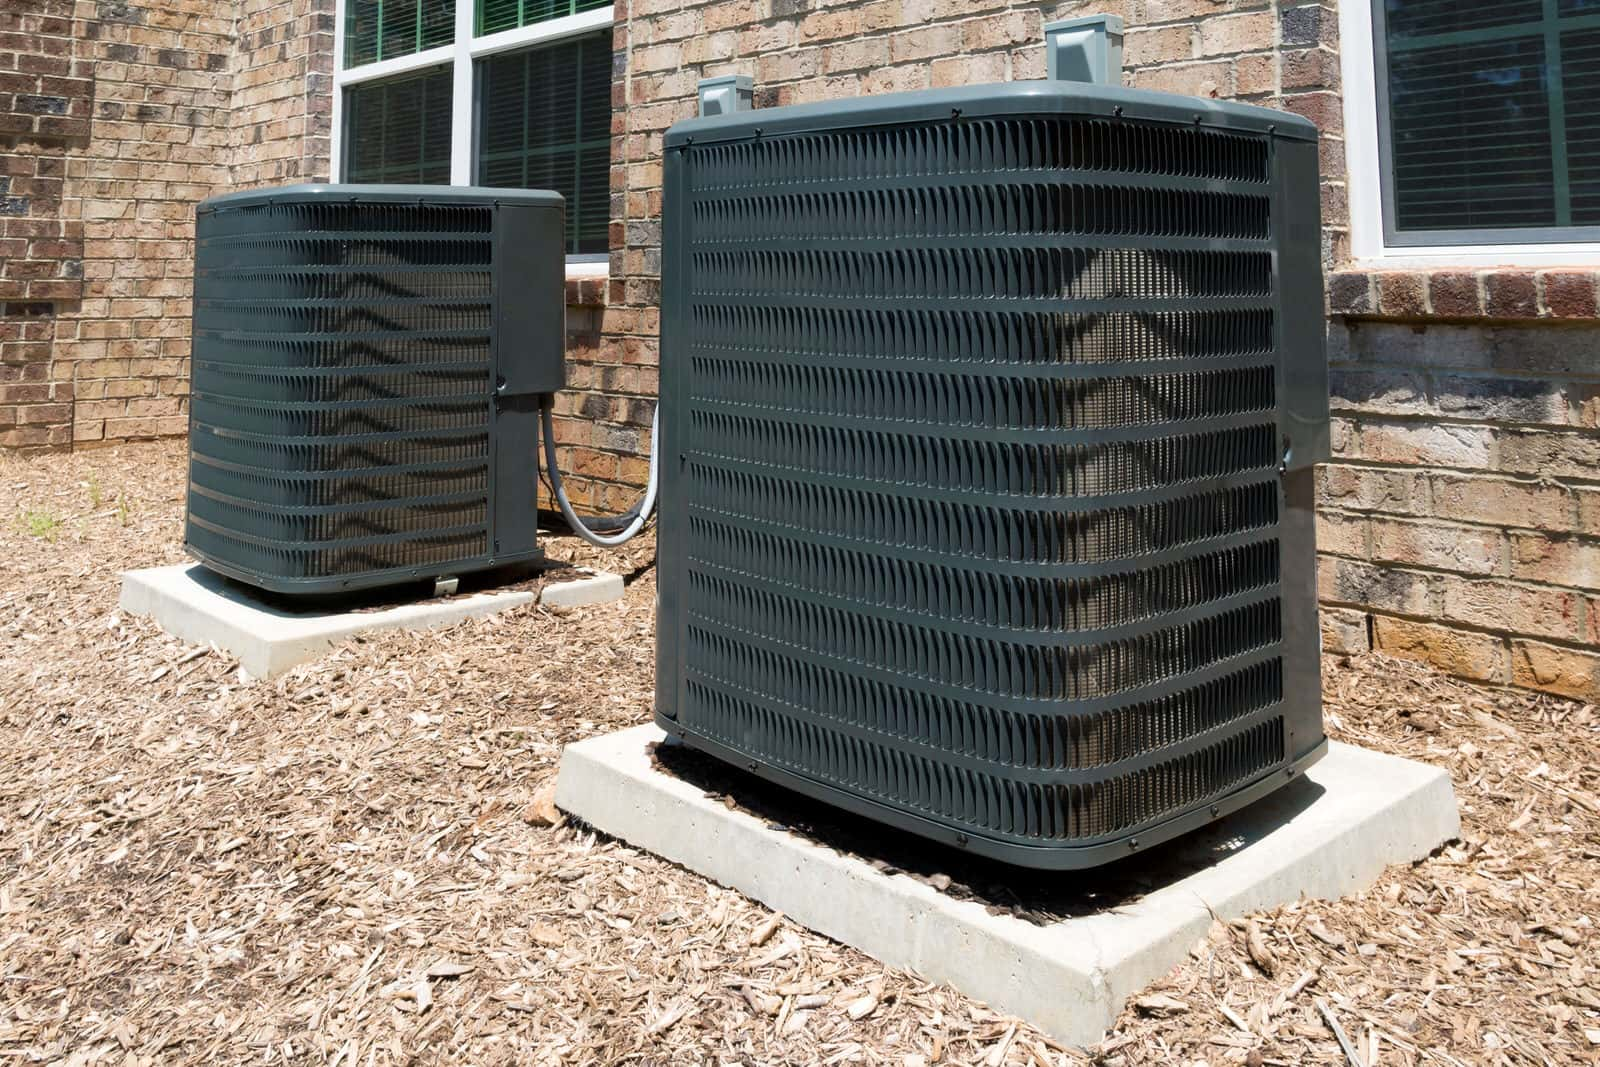 Canton heating and cooling, a new air conditioning system in action